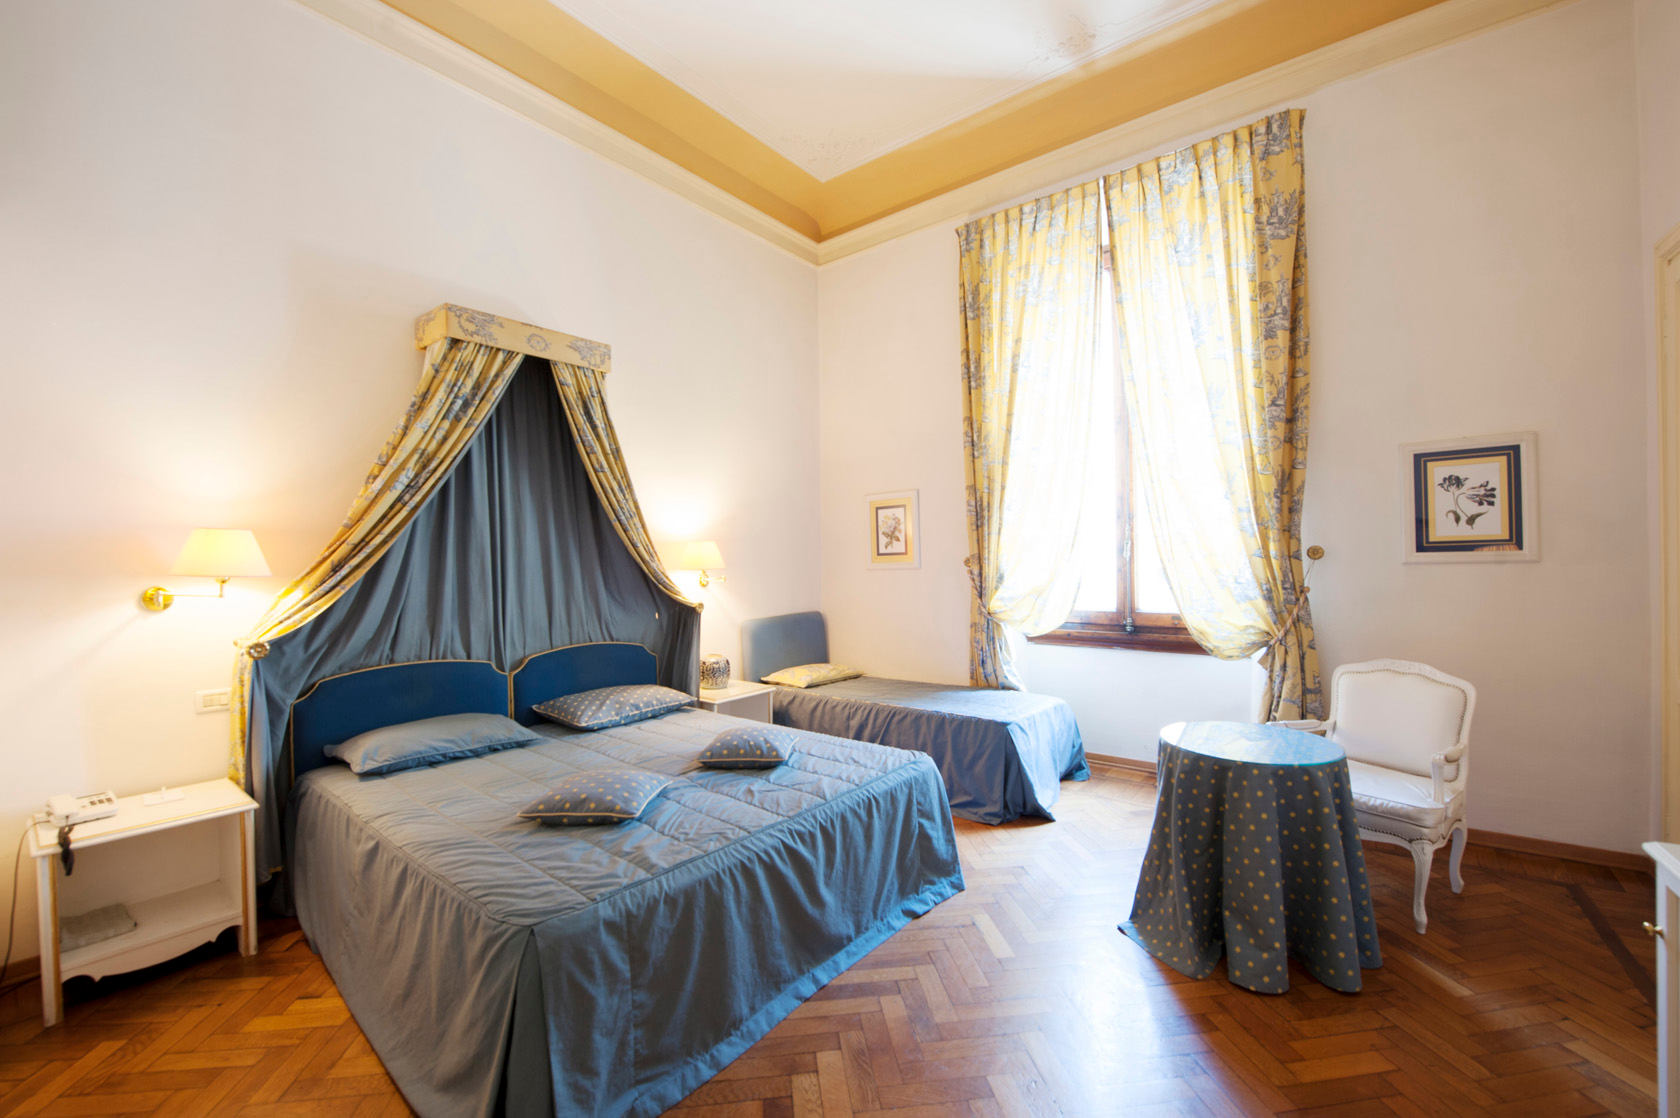 Bed And Breakfast Firenze Centro Storico Vista Duomo